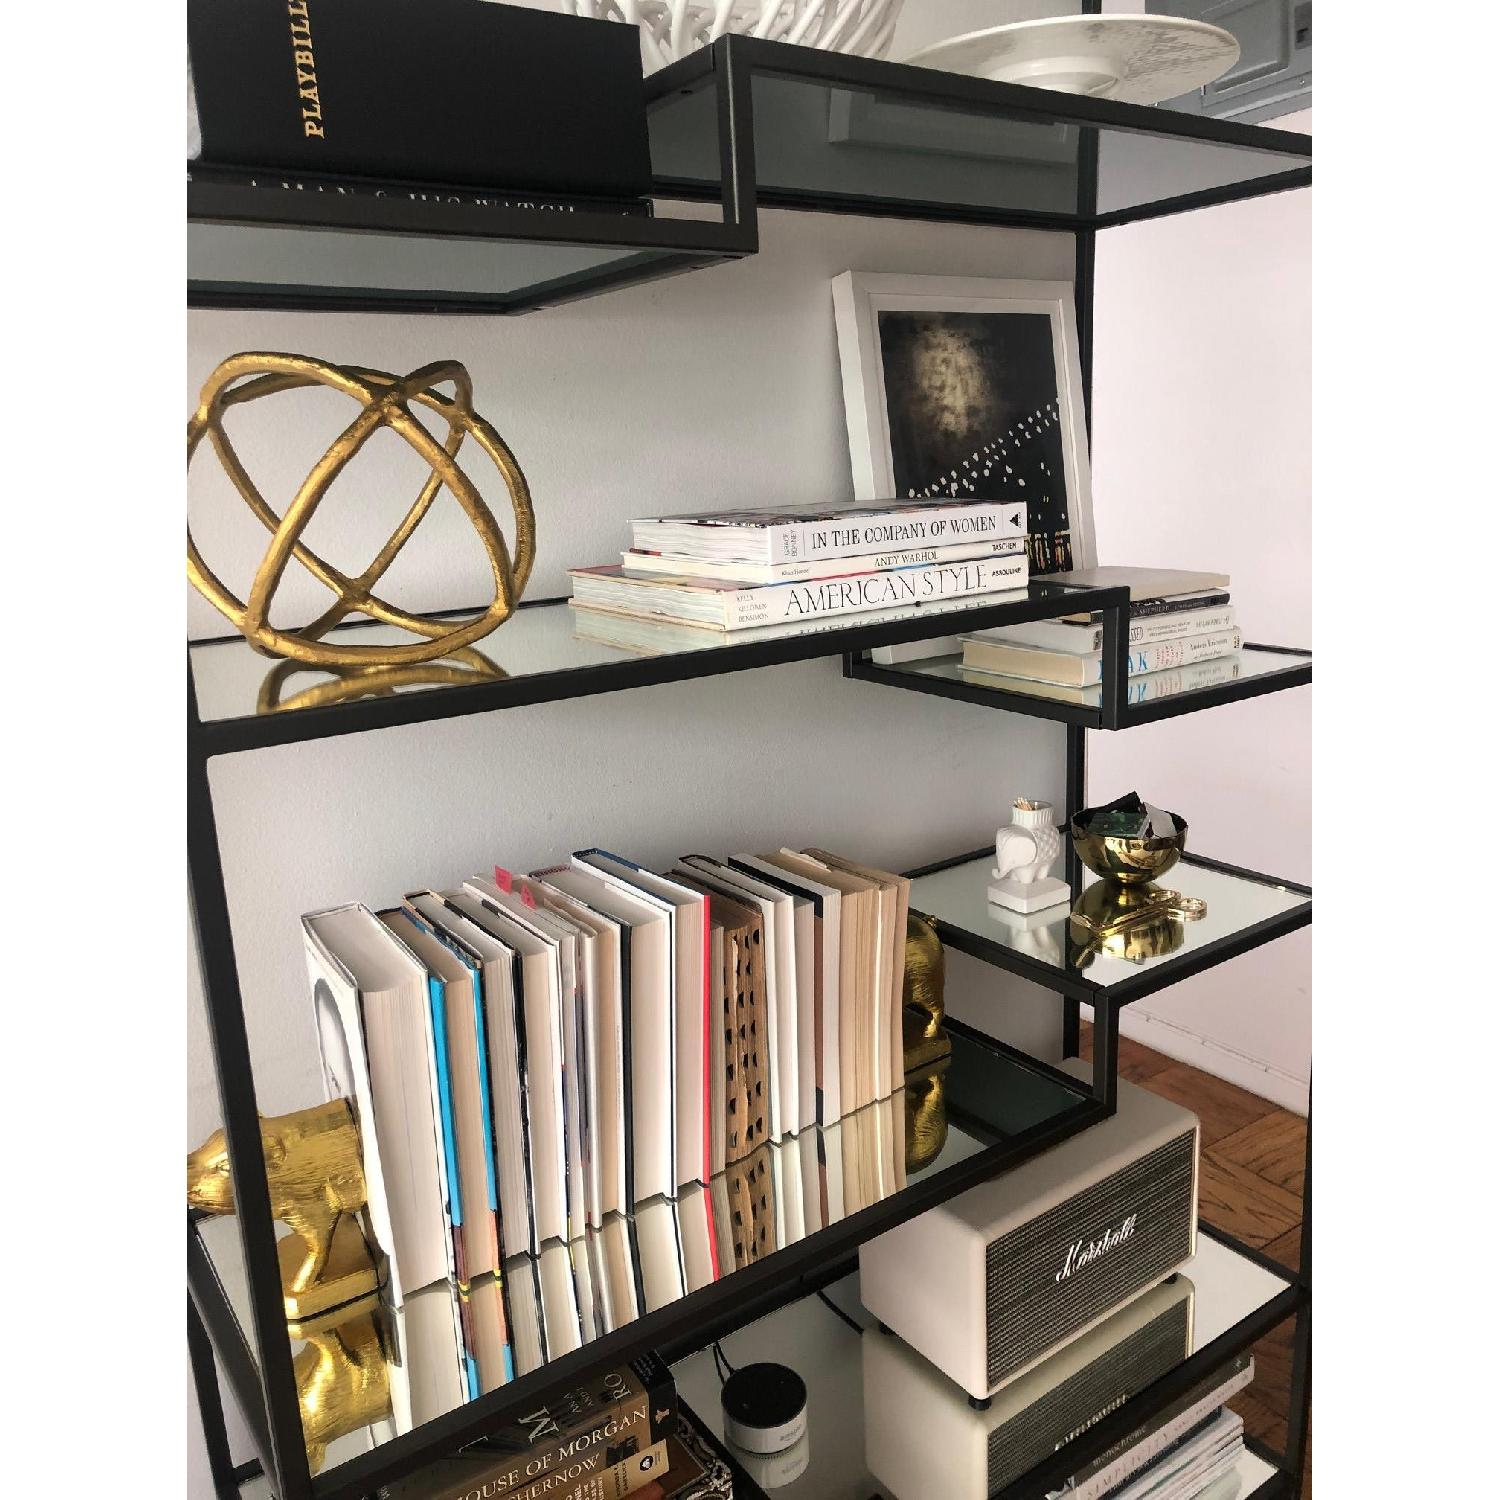 West Elm Tiered Tower Bookcase-4